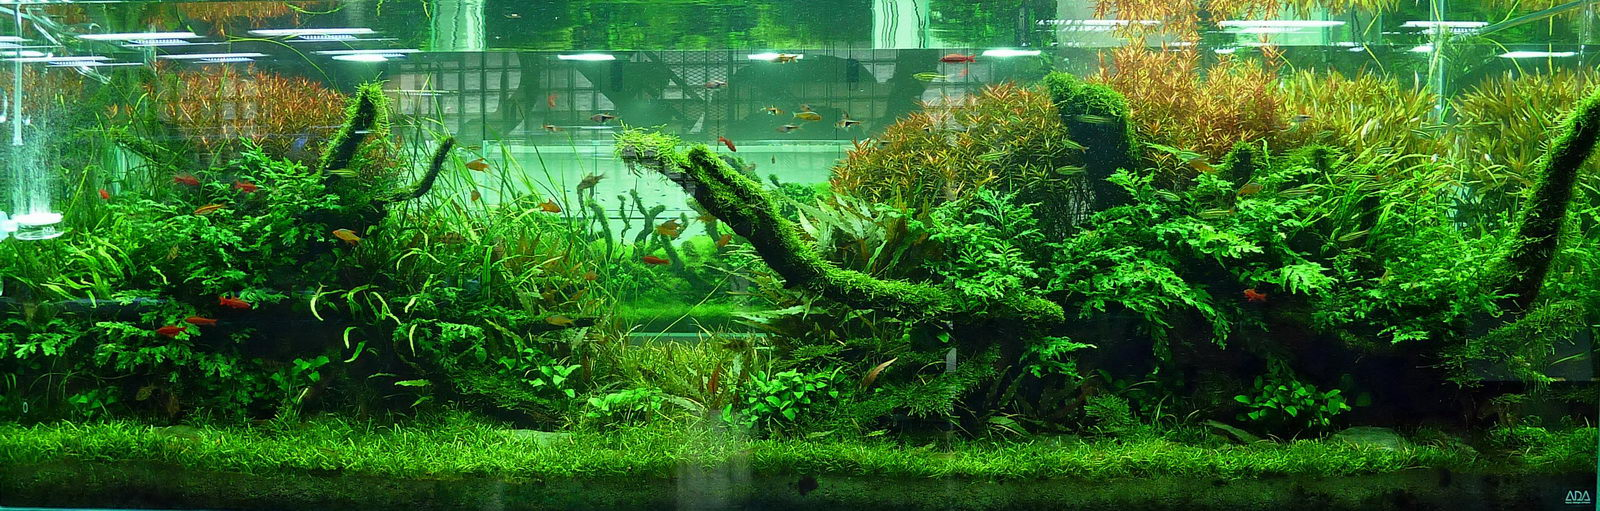 Ideas for 180 gallon aquascape? - The Planted Tank Forum